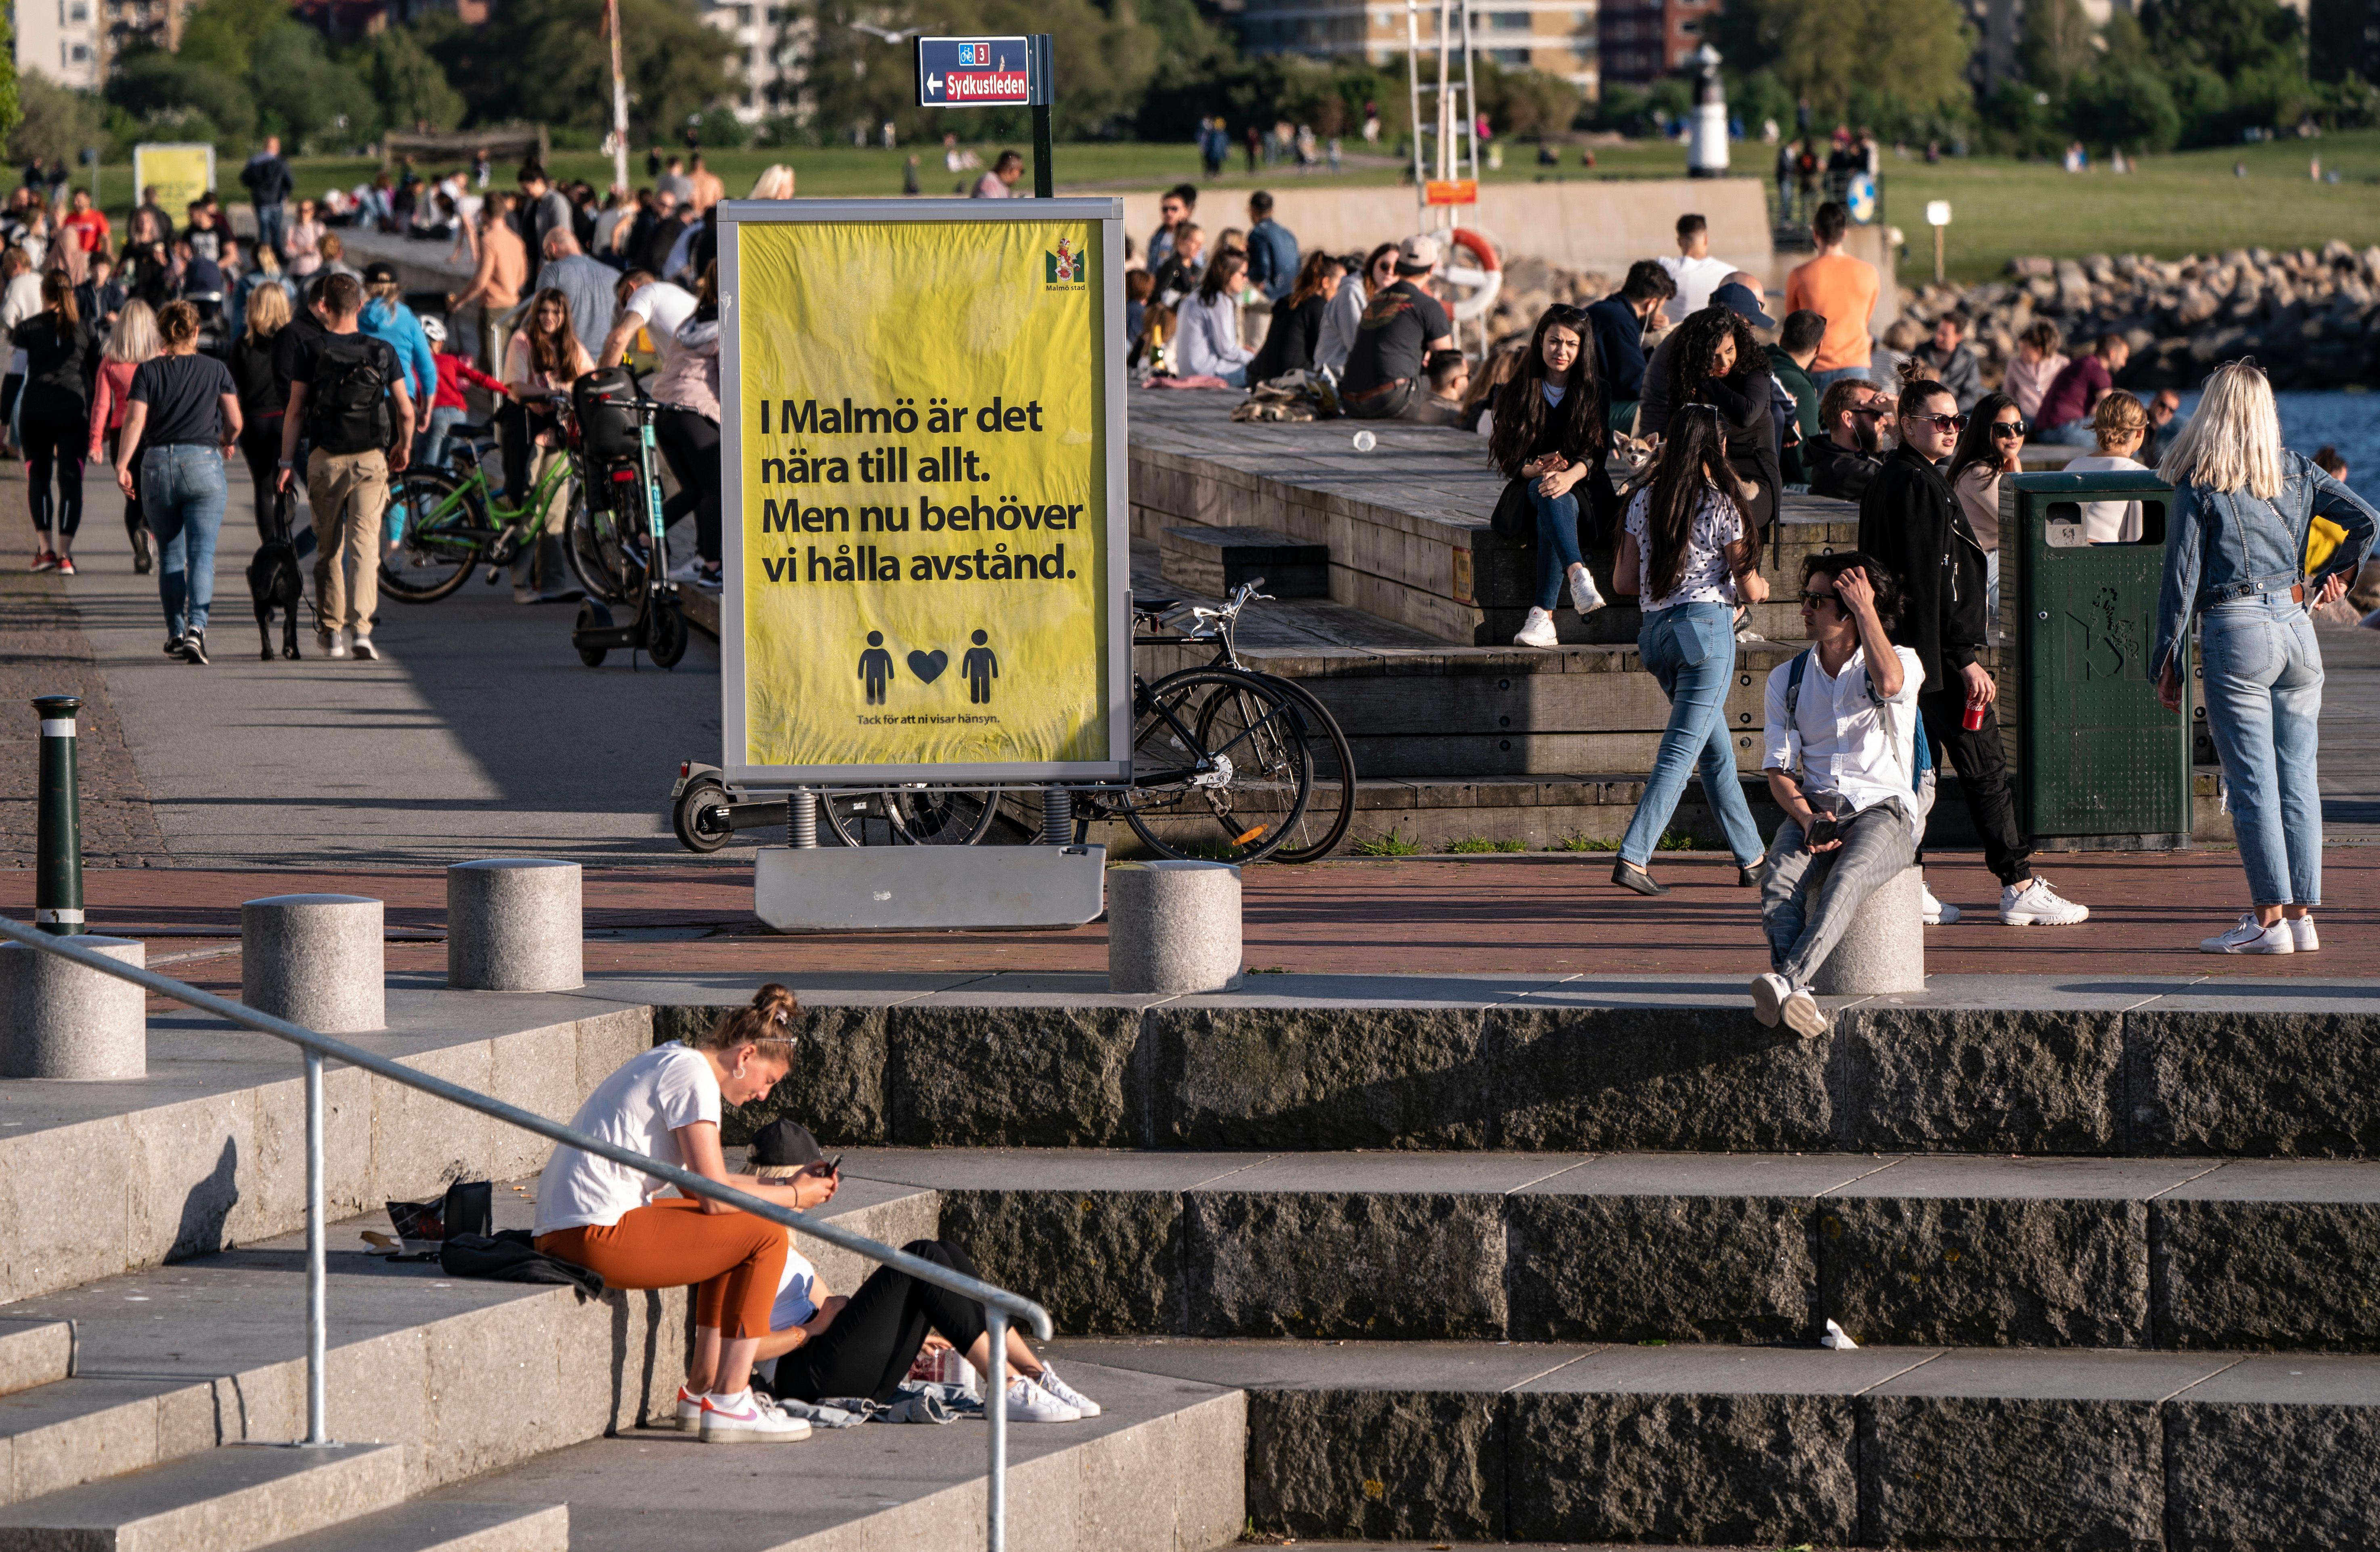 People enjoy the warm evening at Sundspromenaden in Malmo, Sweden, on May 26, 2020, amid the coronavirus pandemic. - The sign reads 'In Malmo everything is near. But now, we need to keep distance'. (Photo by Johan NILSSON / TT News Agency / AFP) / Sweden OUT (Photo by JOHAN NILSSON/TT News Agency/AFP via Getty Images)